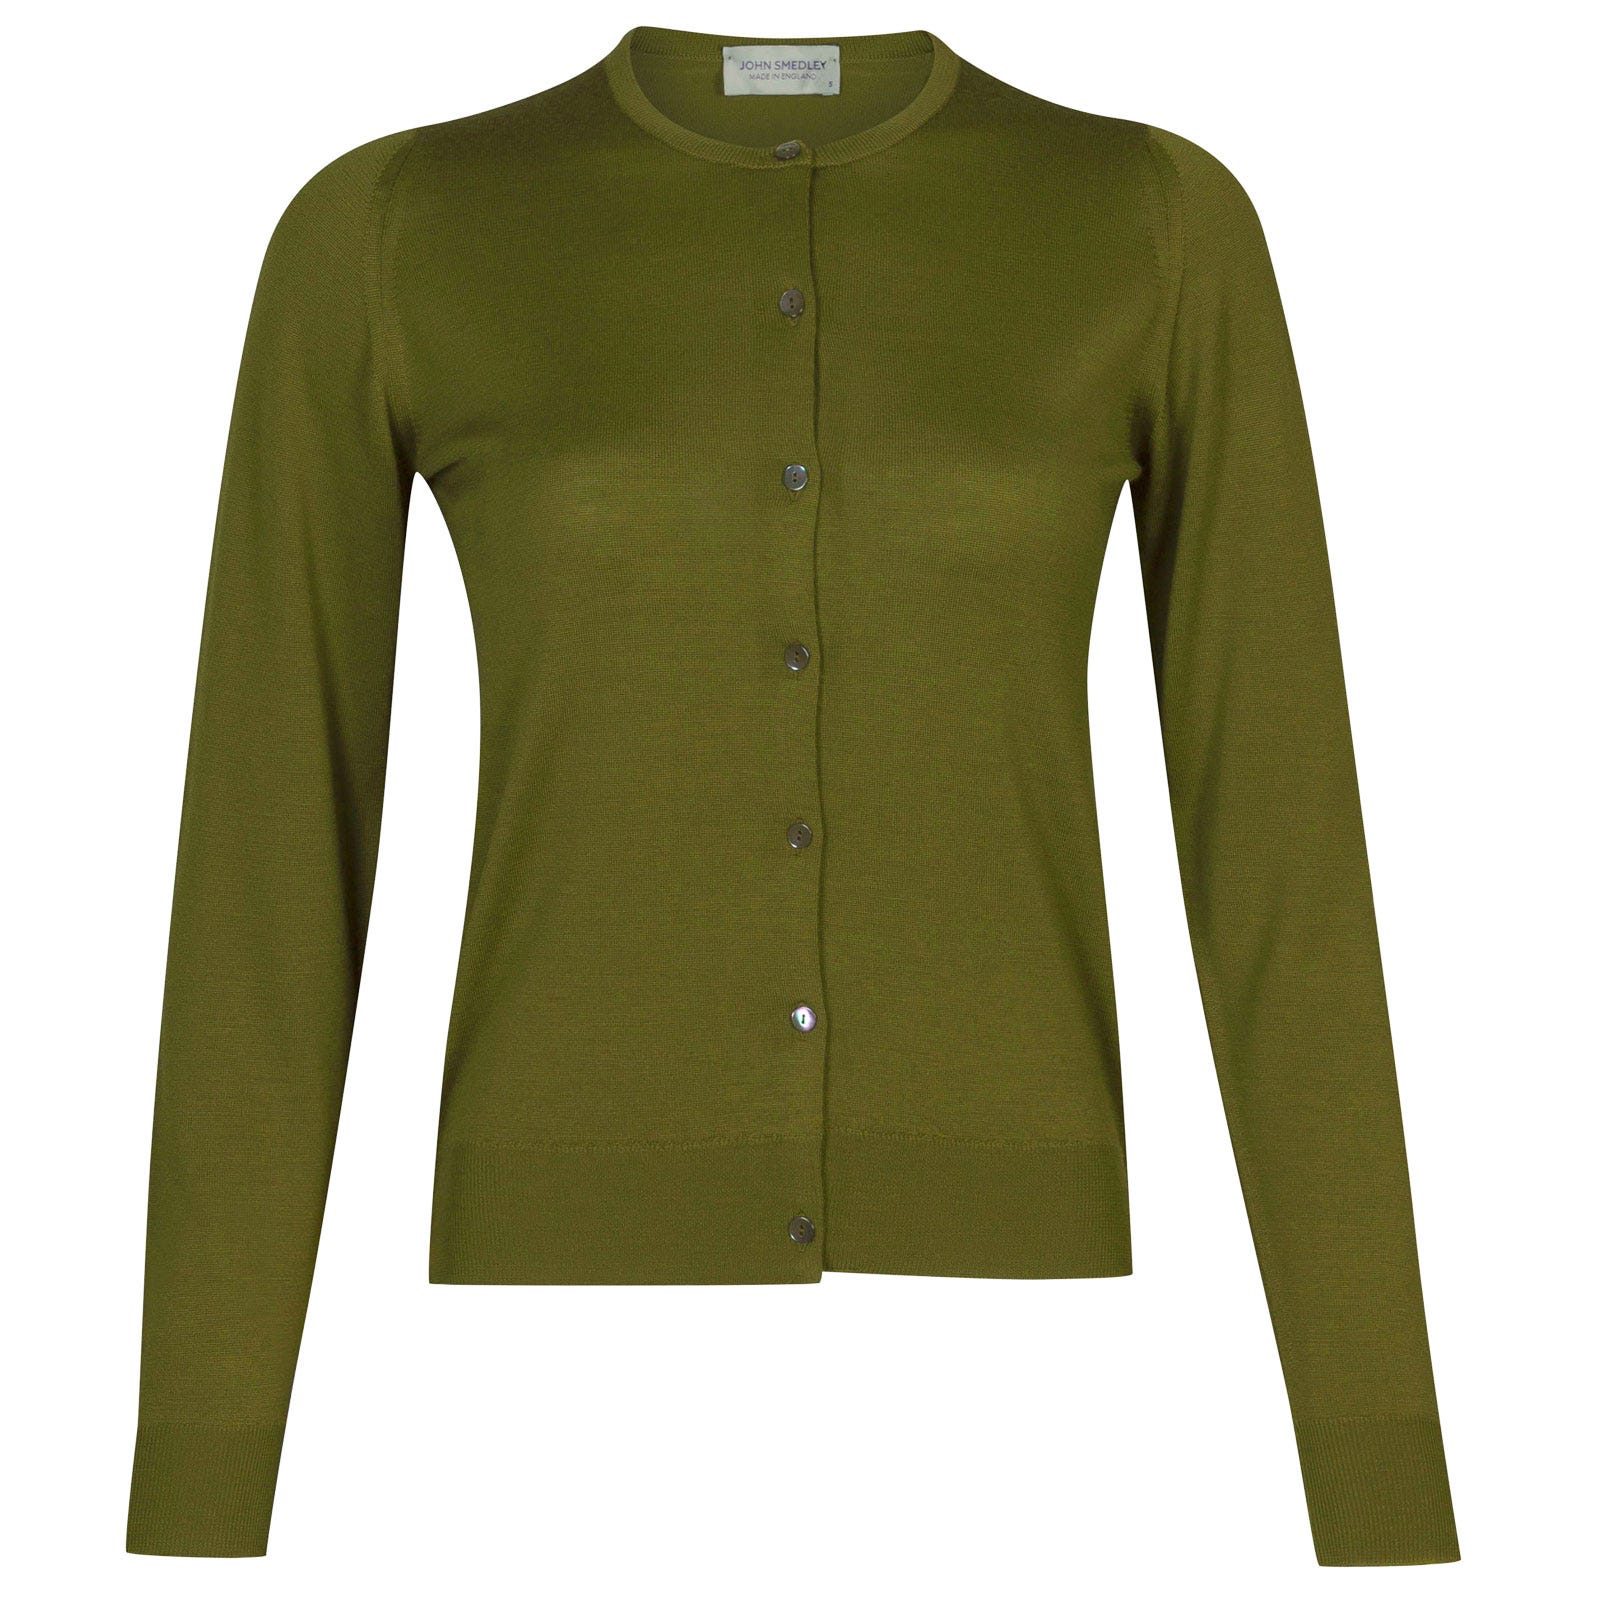 John Smedley florence Merino Wool Cardigan in Lumsdale Green-M